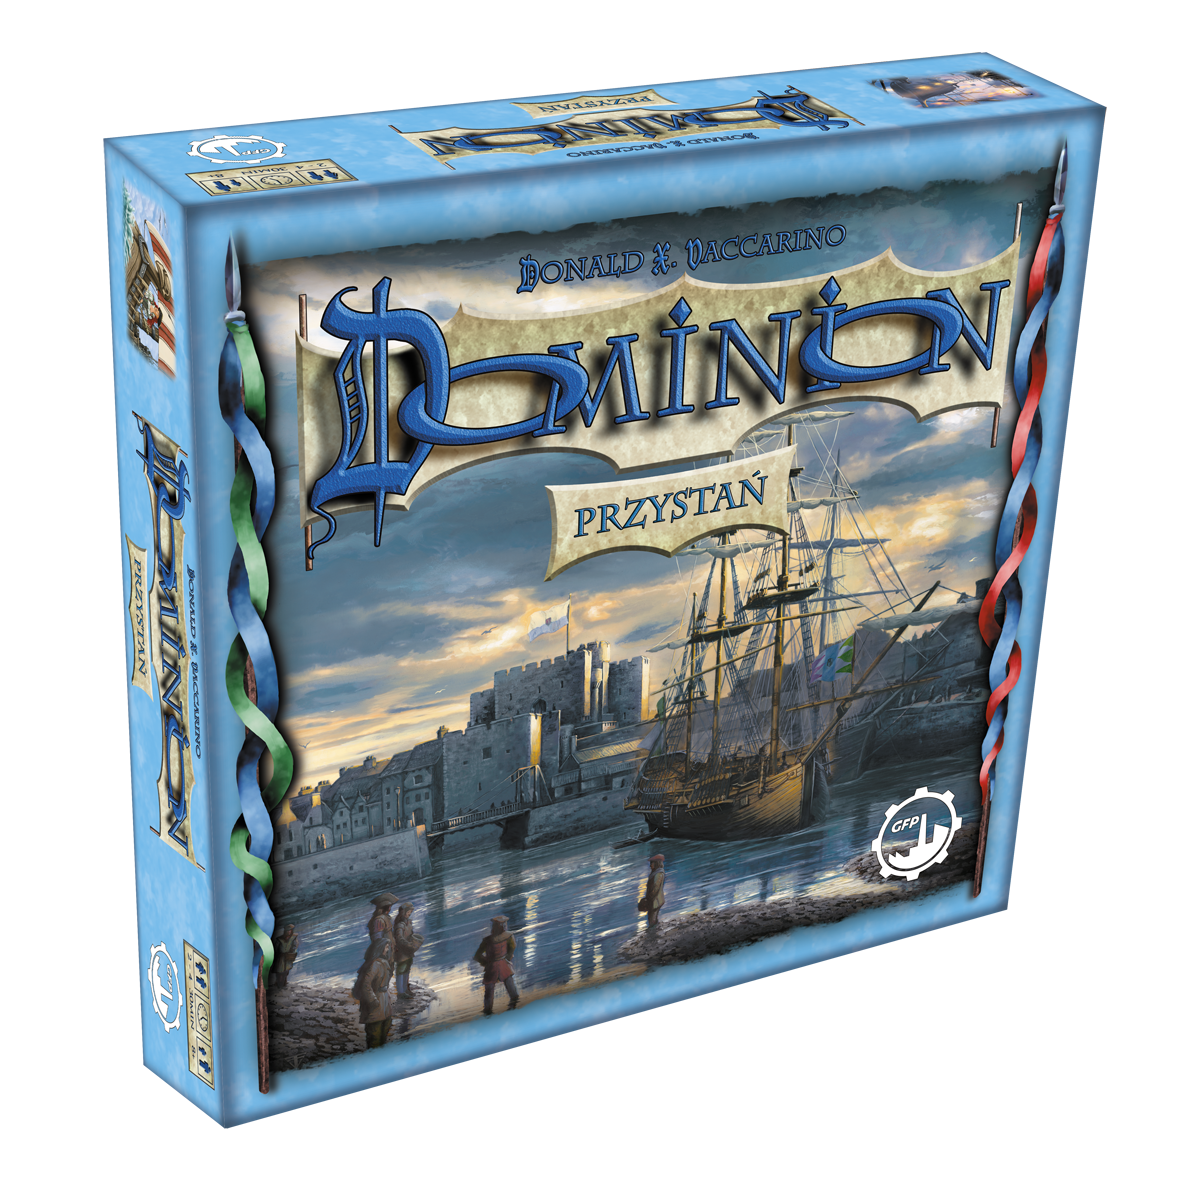 Dominion-seaside-Box-3D-sma